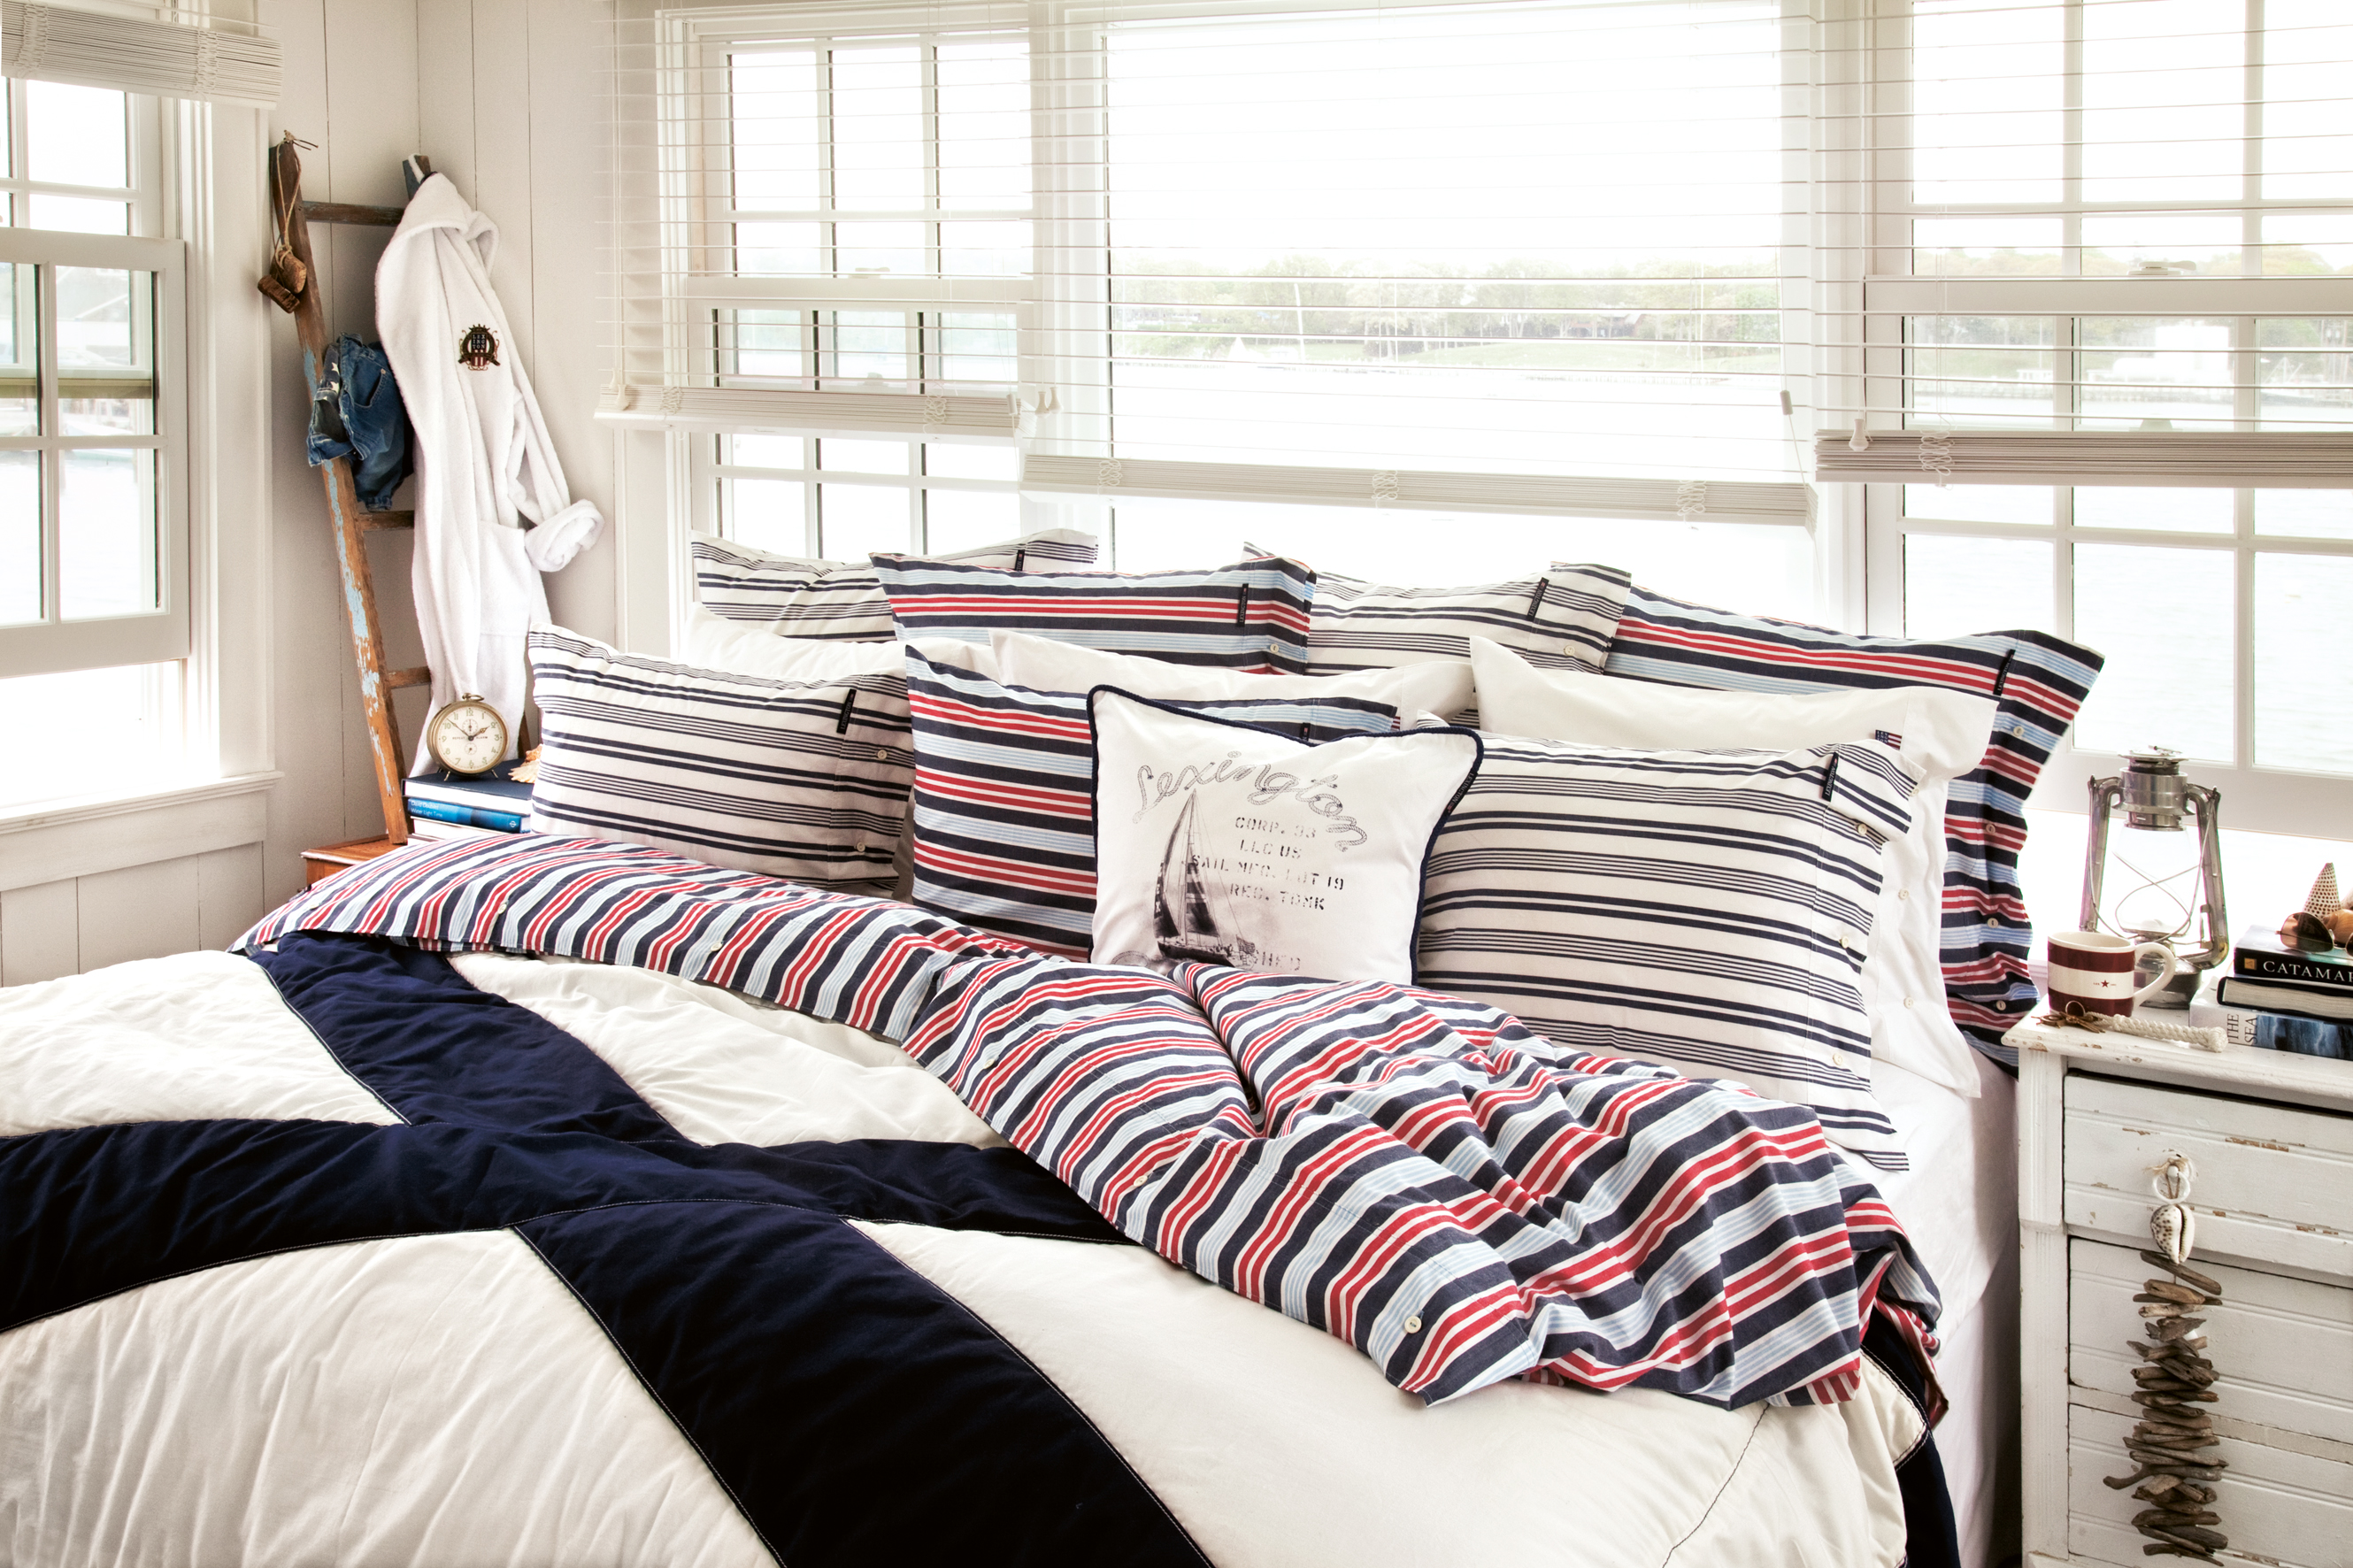 Focus On The Details: Buying Bed Linen